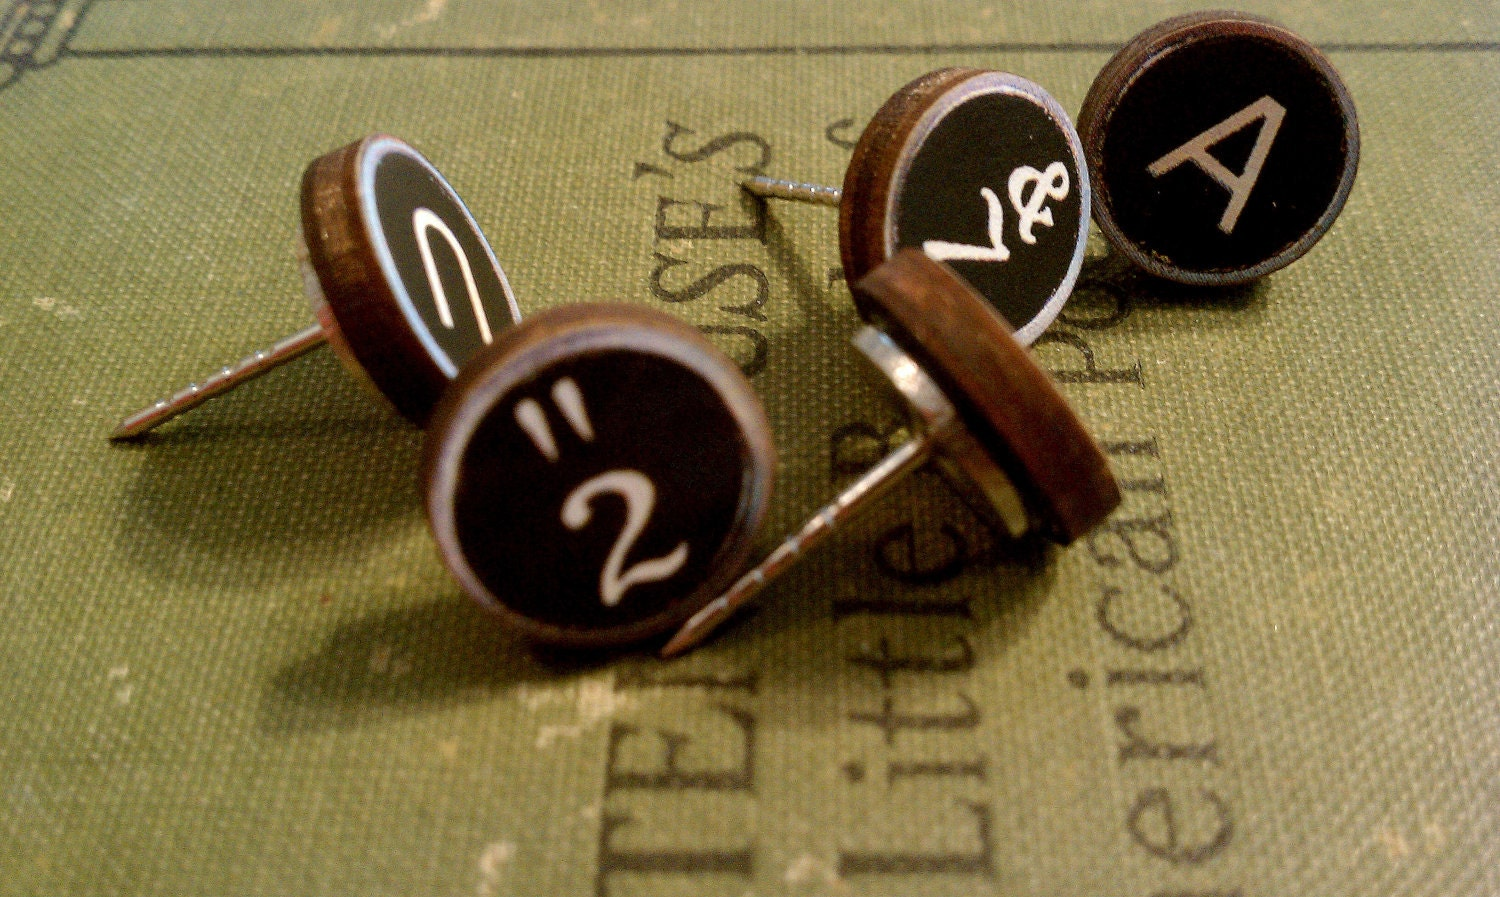 Vintage Style Typewriter Key Push Pins Magnets - Qty 5 - Old School Retro Industrial Office College